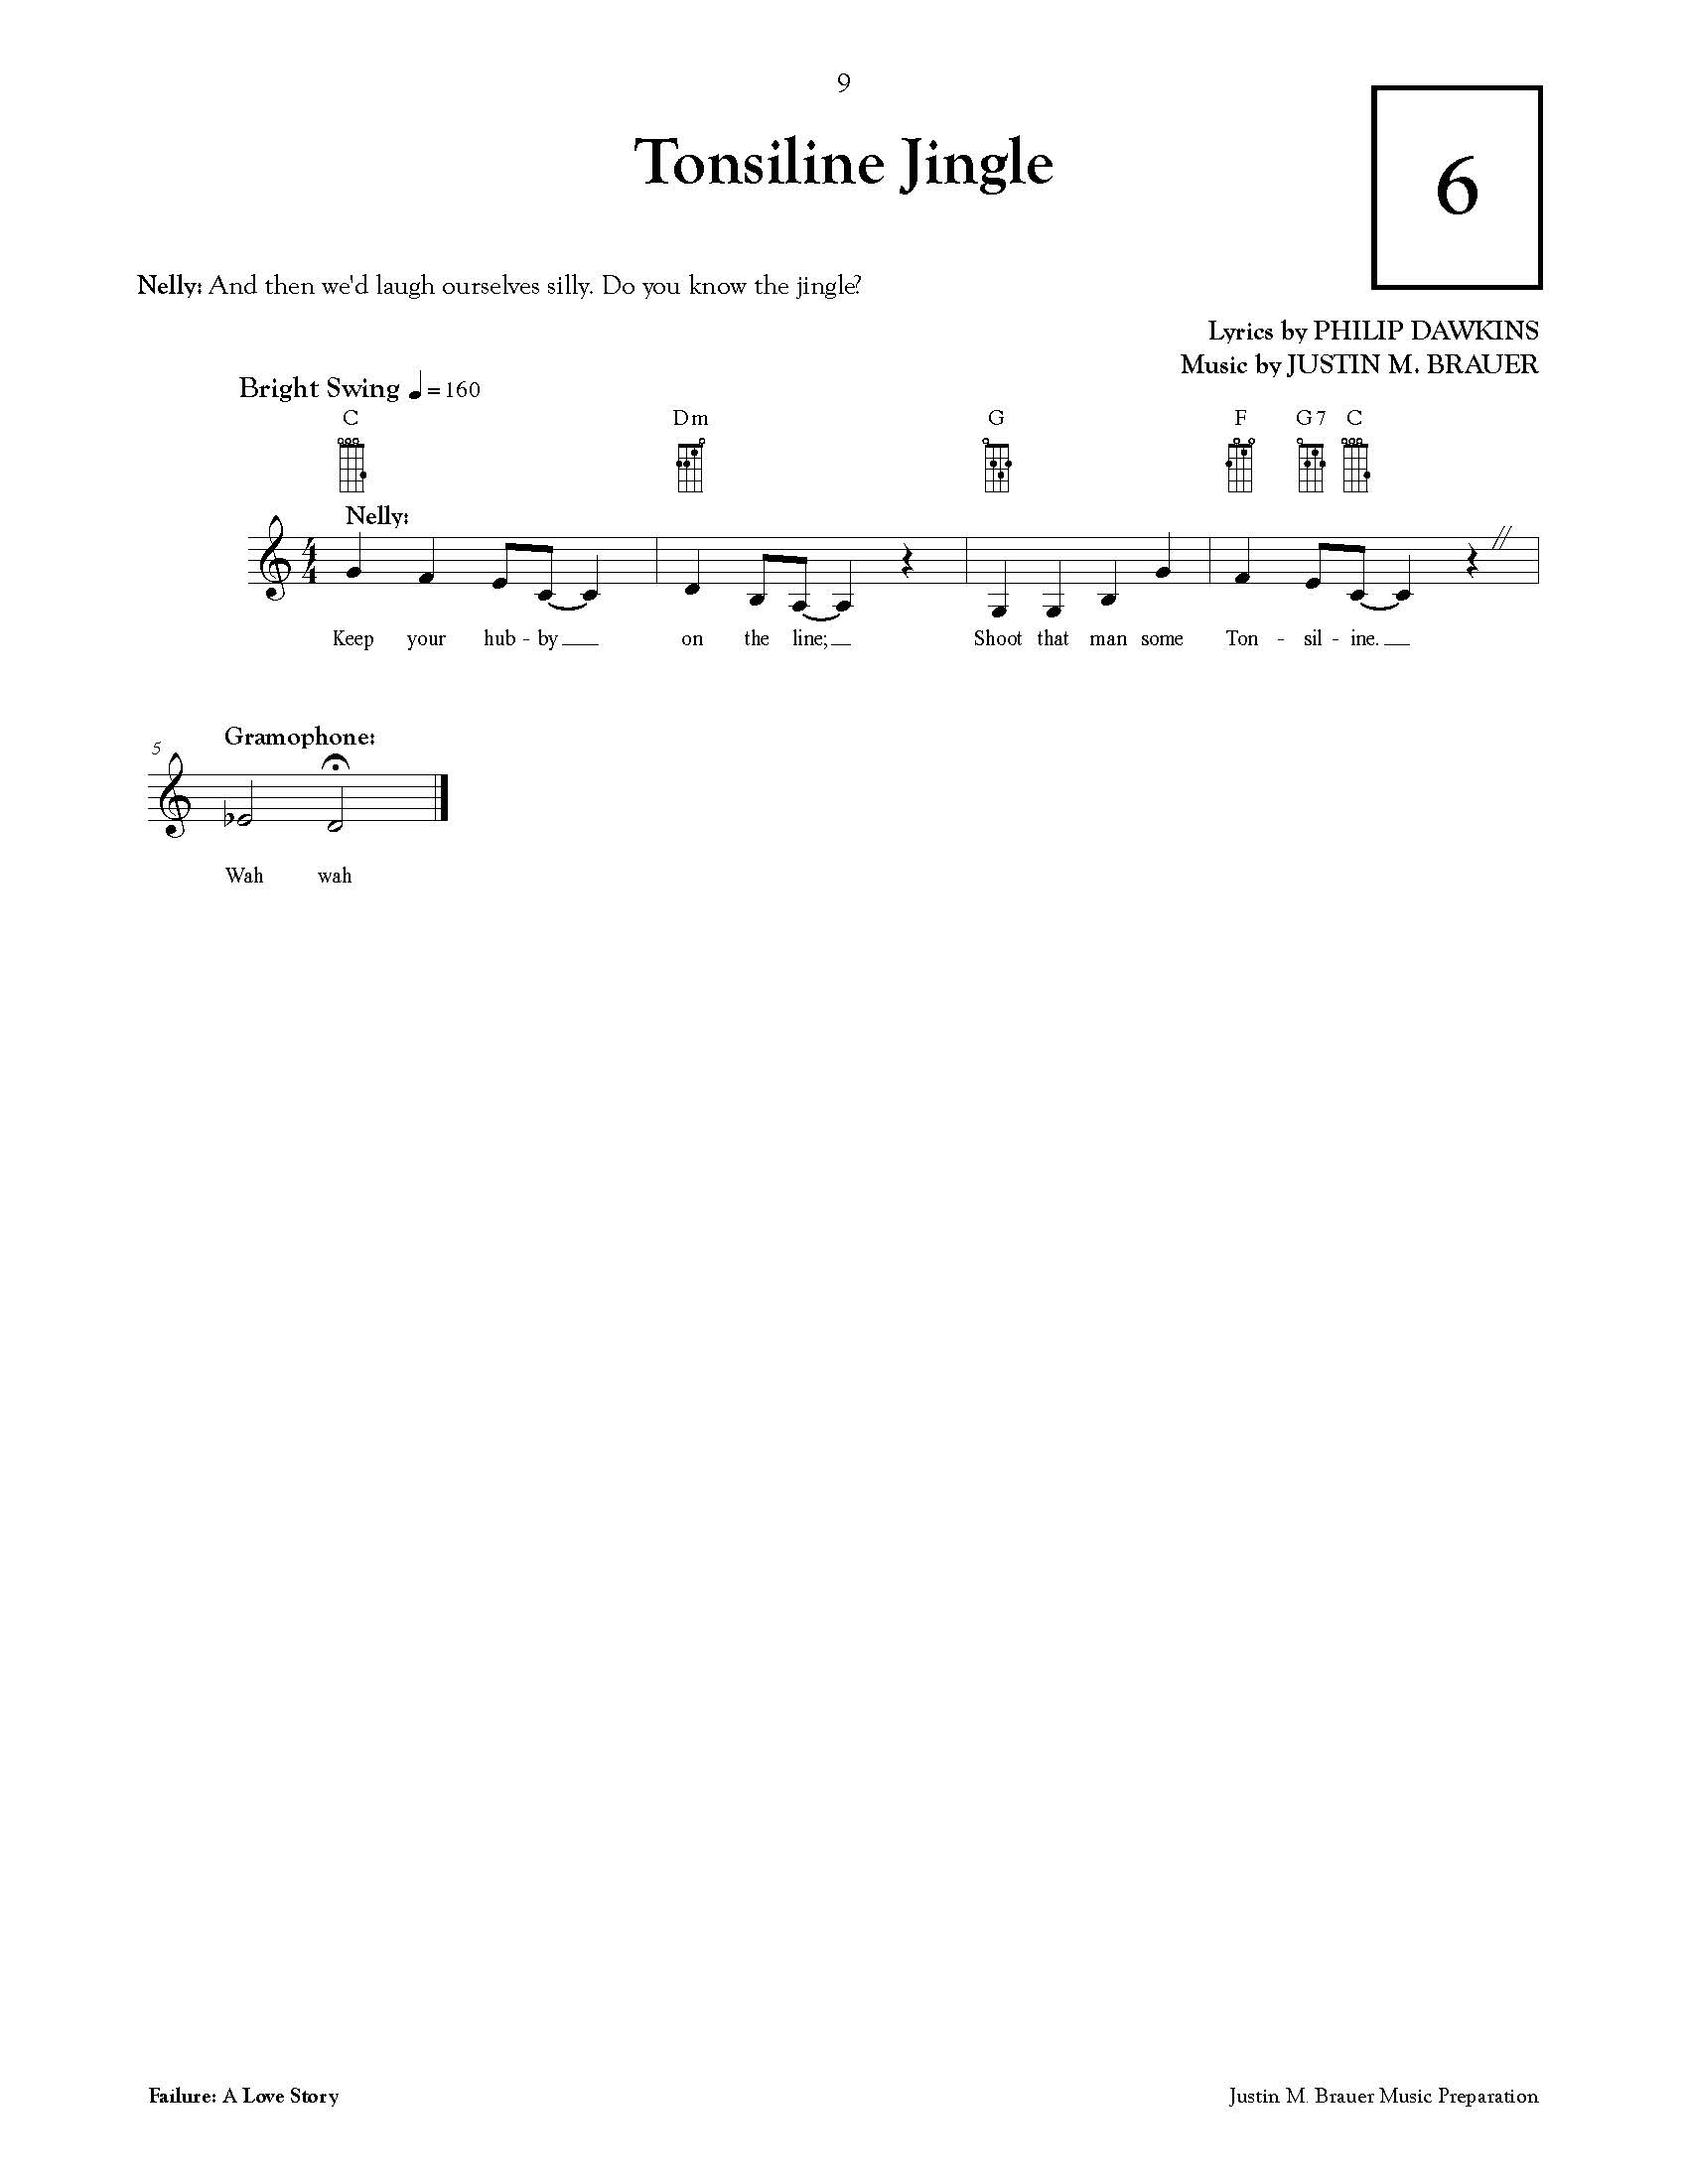 Failure A Love Story Vocal Score_Page_11.jpg